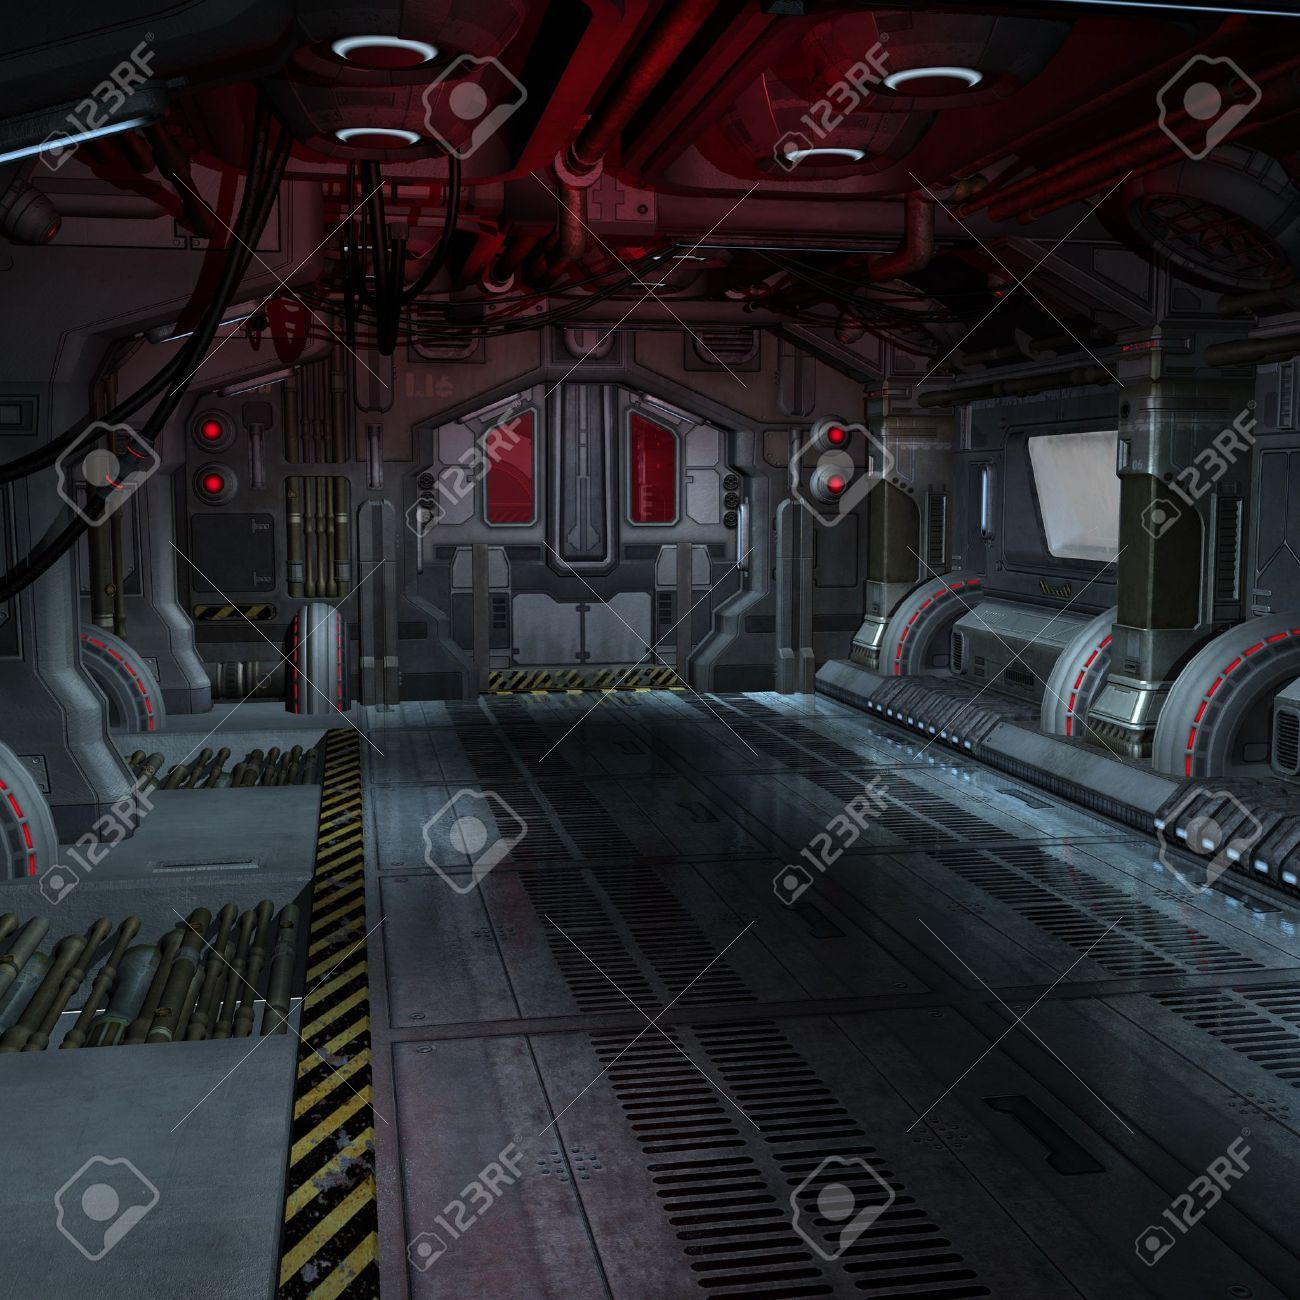 7034700-background-or-composing-image-inside-a-futuristic-scifi-spaceship-Stock-Photo.jpg (1300×1300)